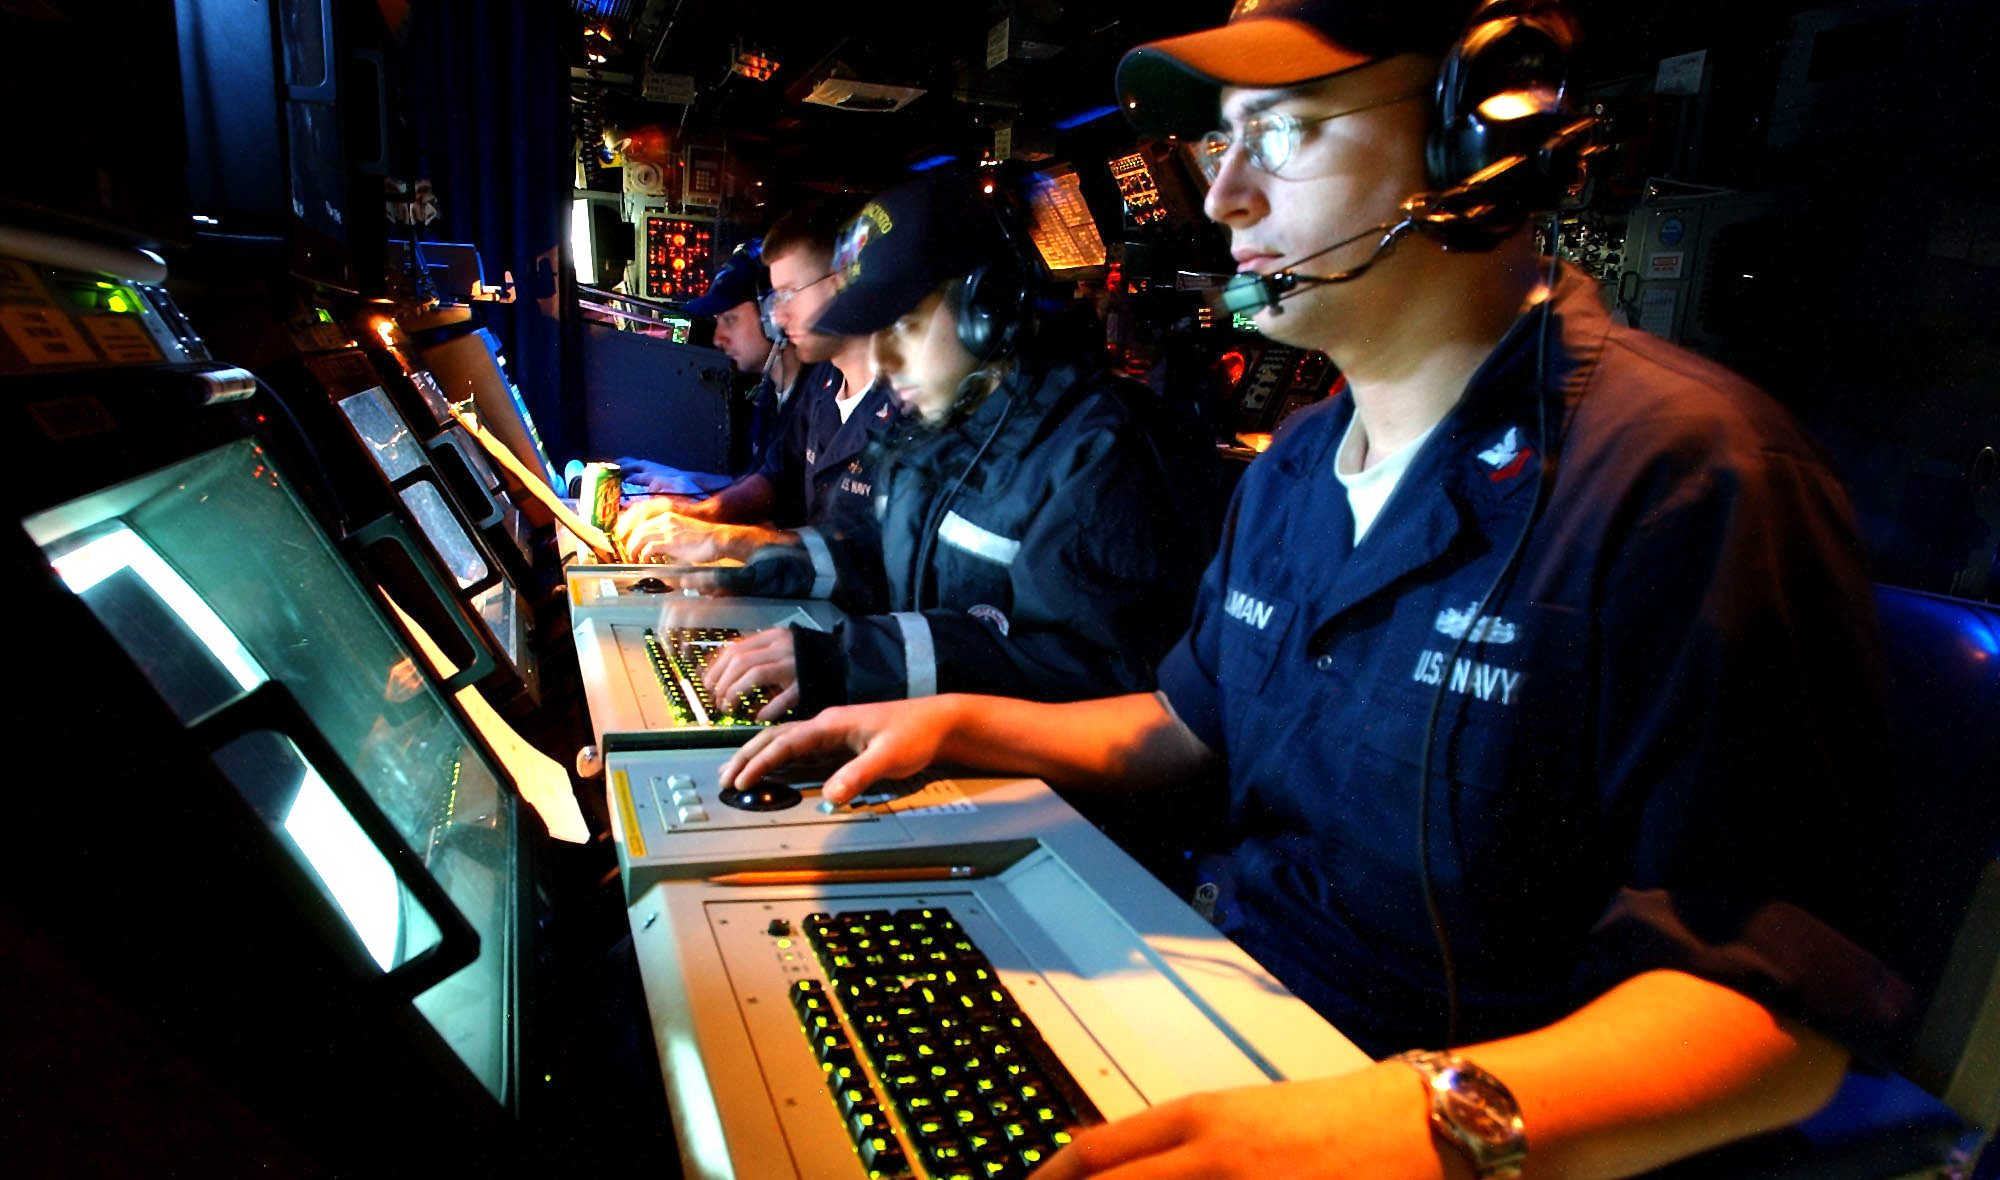 A Cyber Vulnerability Assessment Of The U S Navy In The